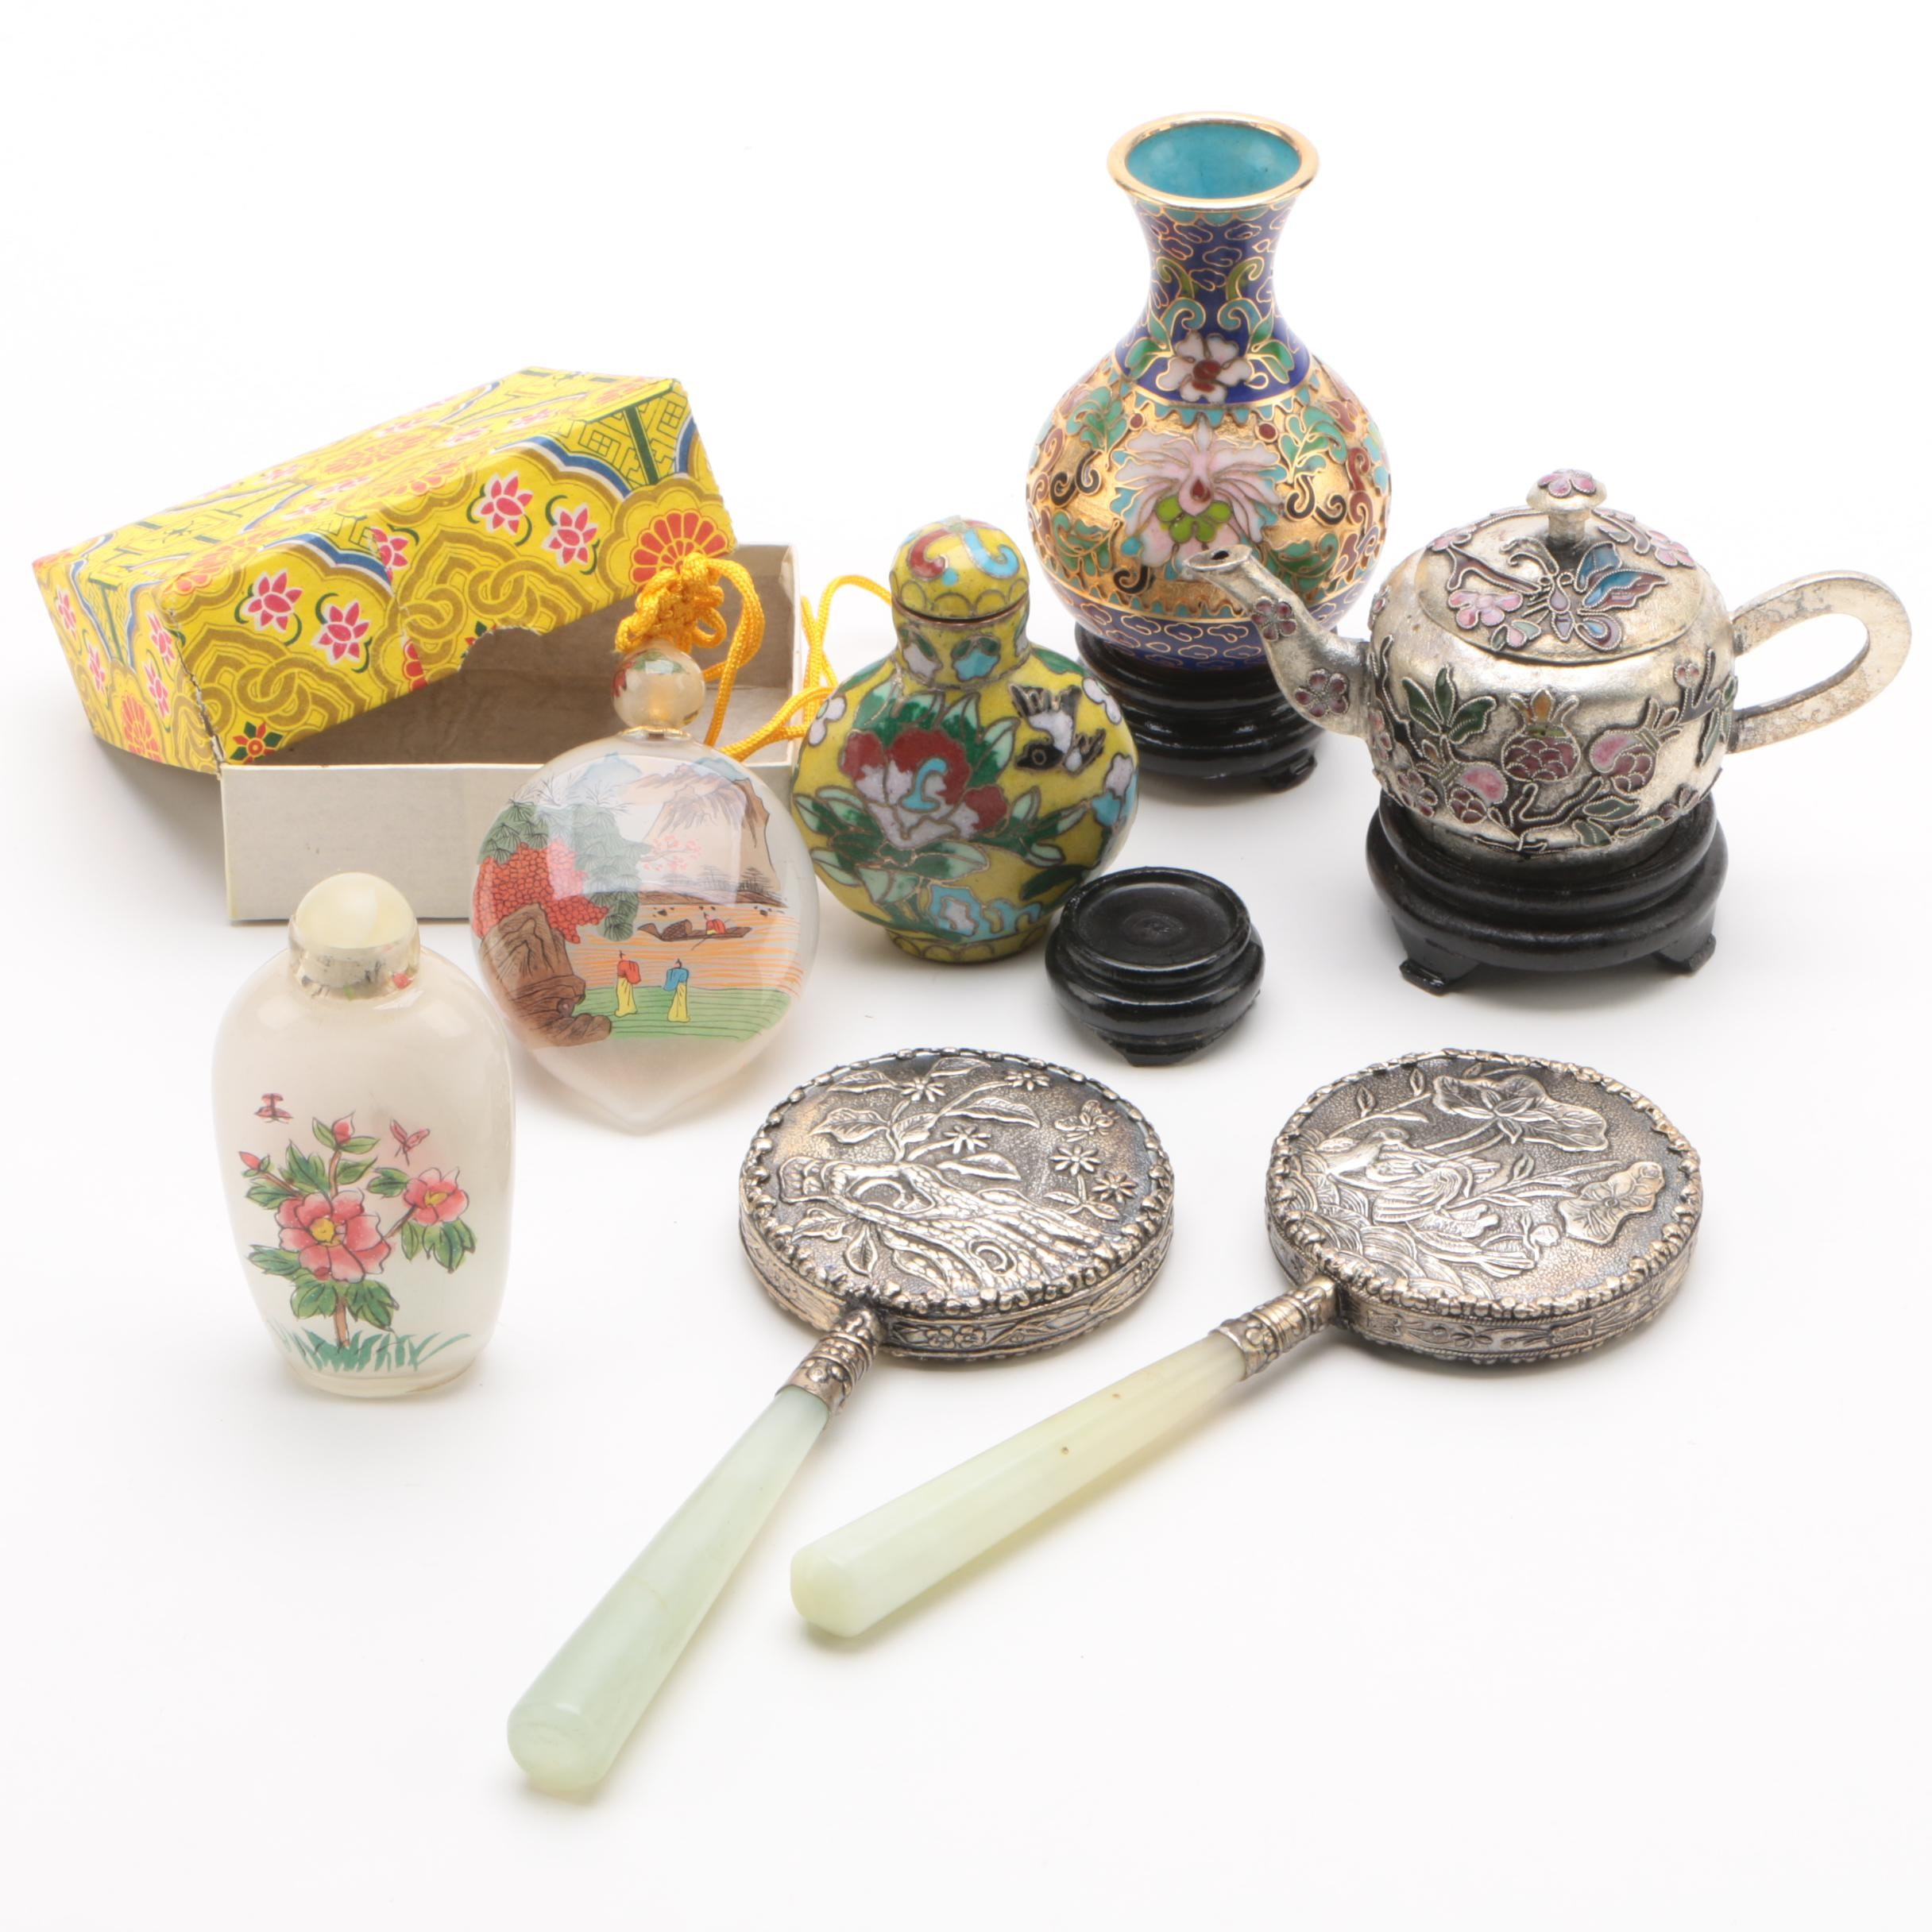 Chinese Snuff Bottles and Miniatures with Stone Handled Mirrors